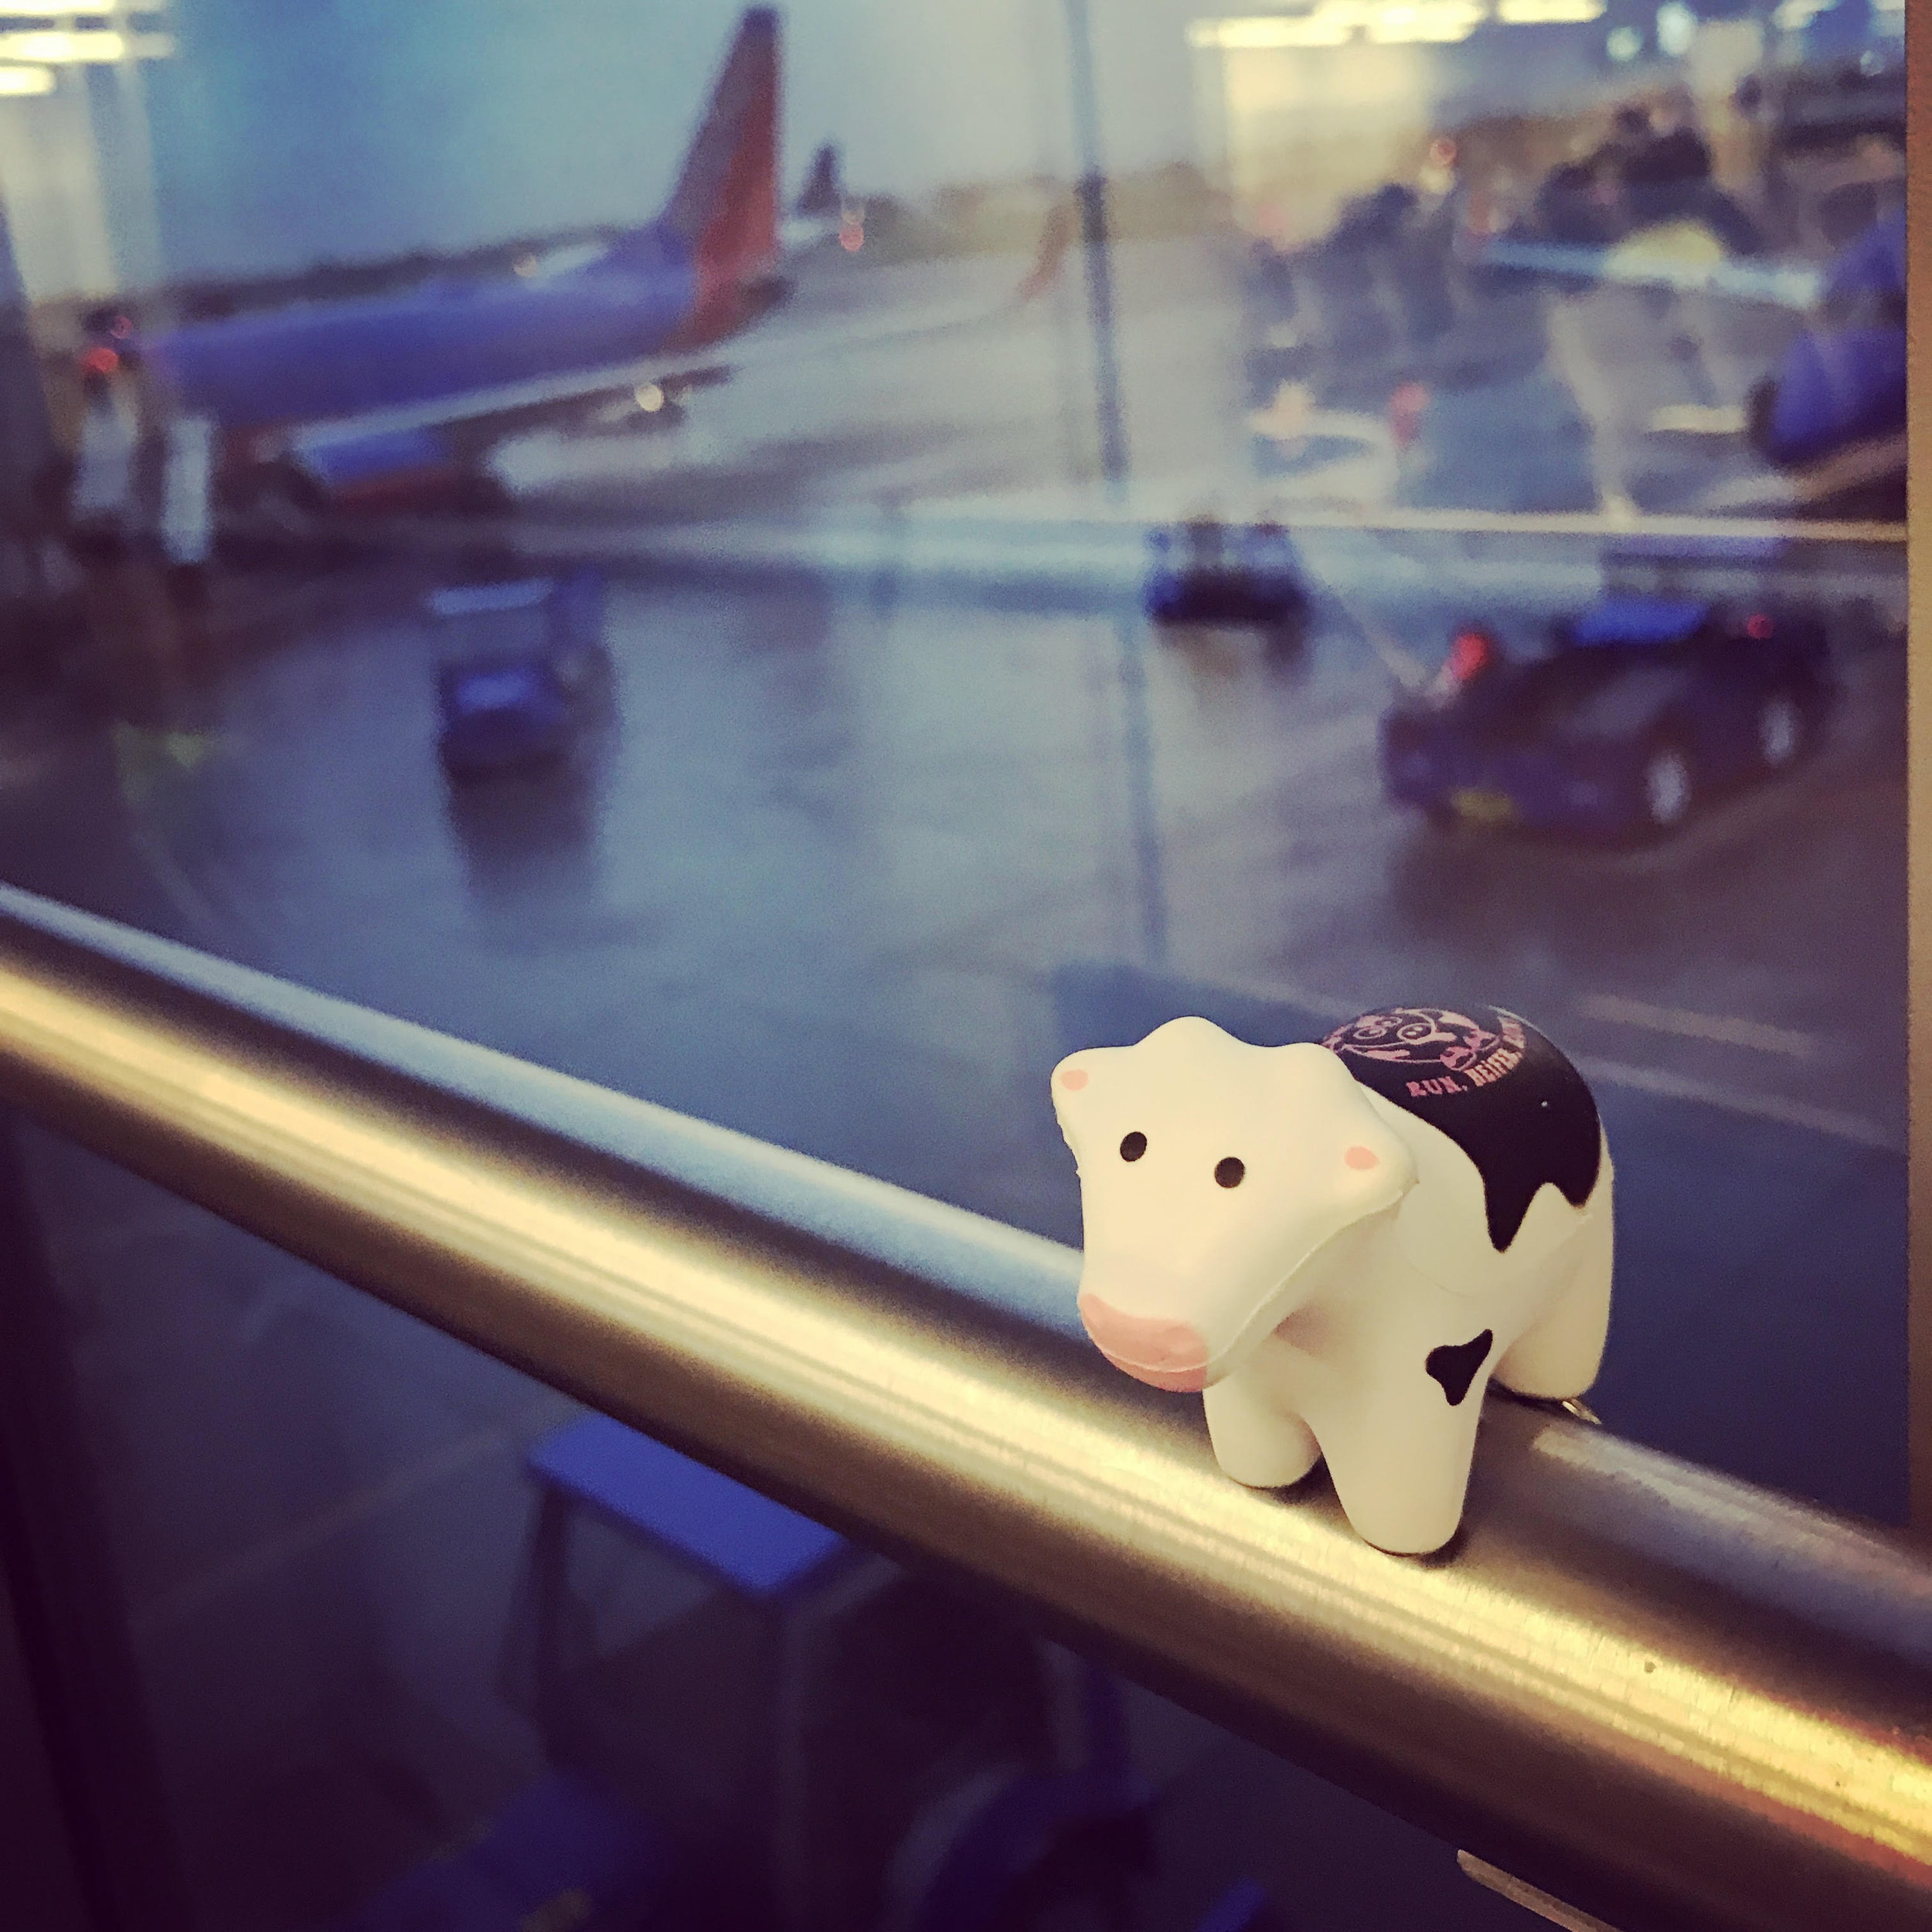 Have #heiferBelle, will travel...and FYI #heiferBelle flies SWA.